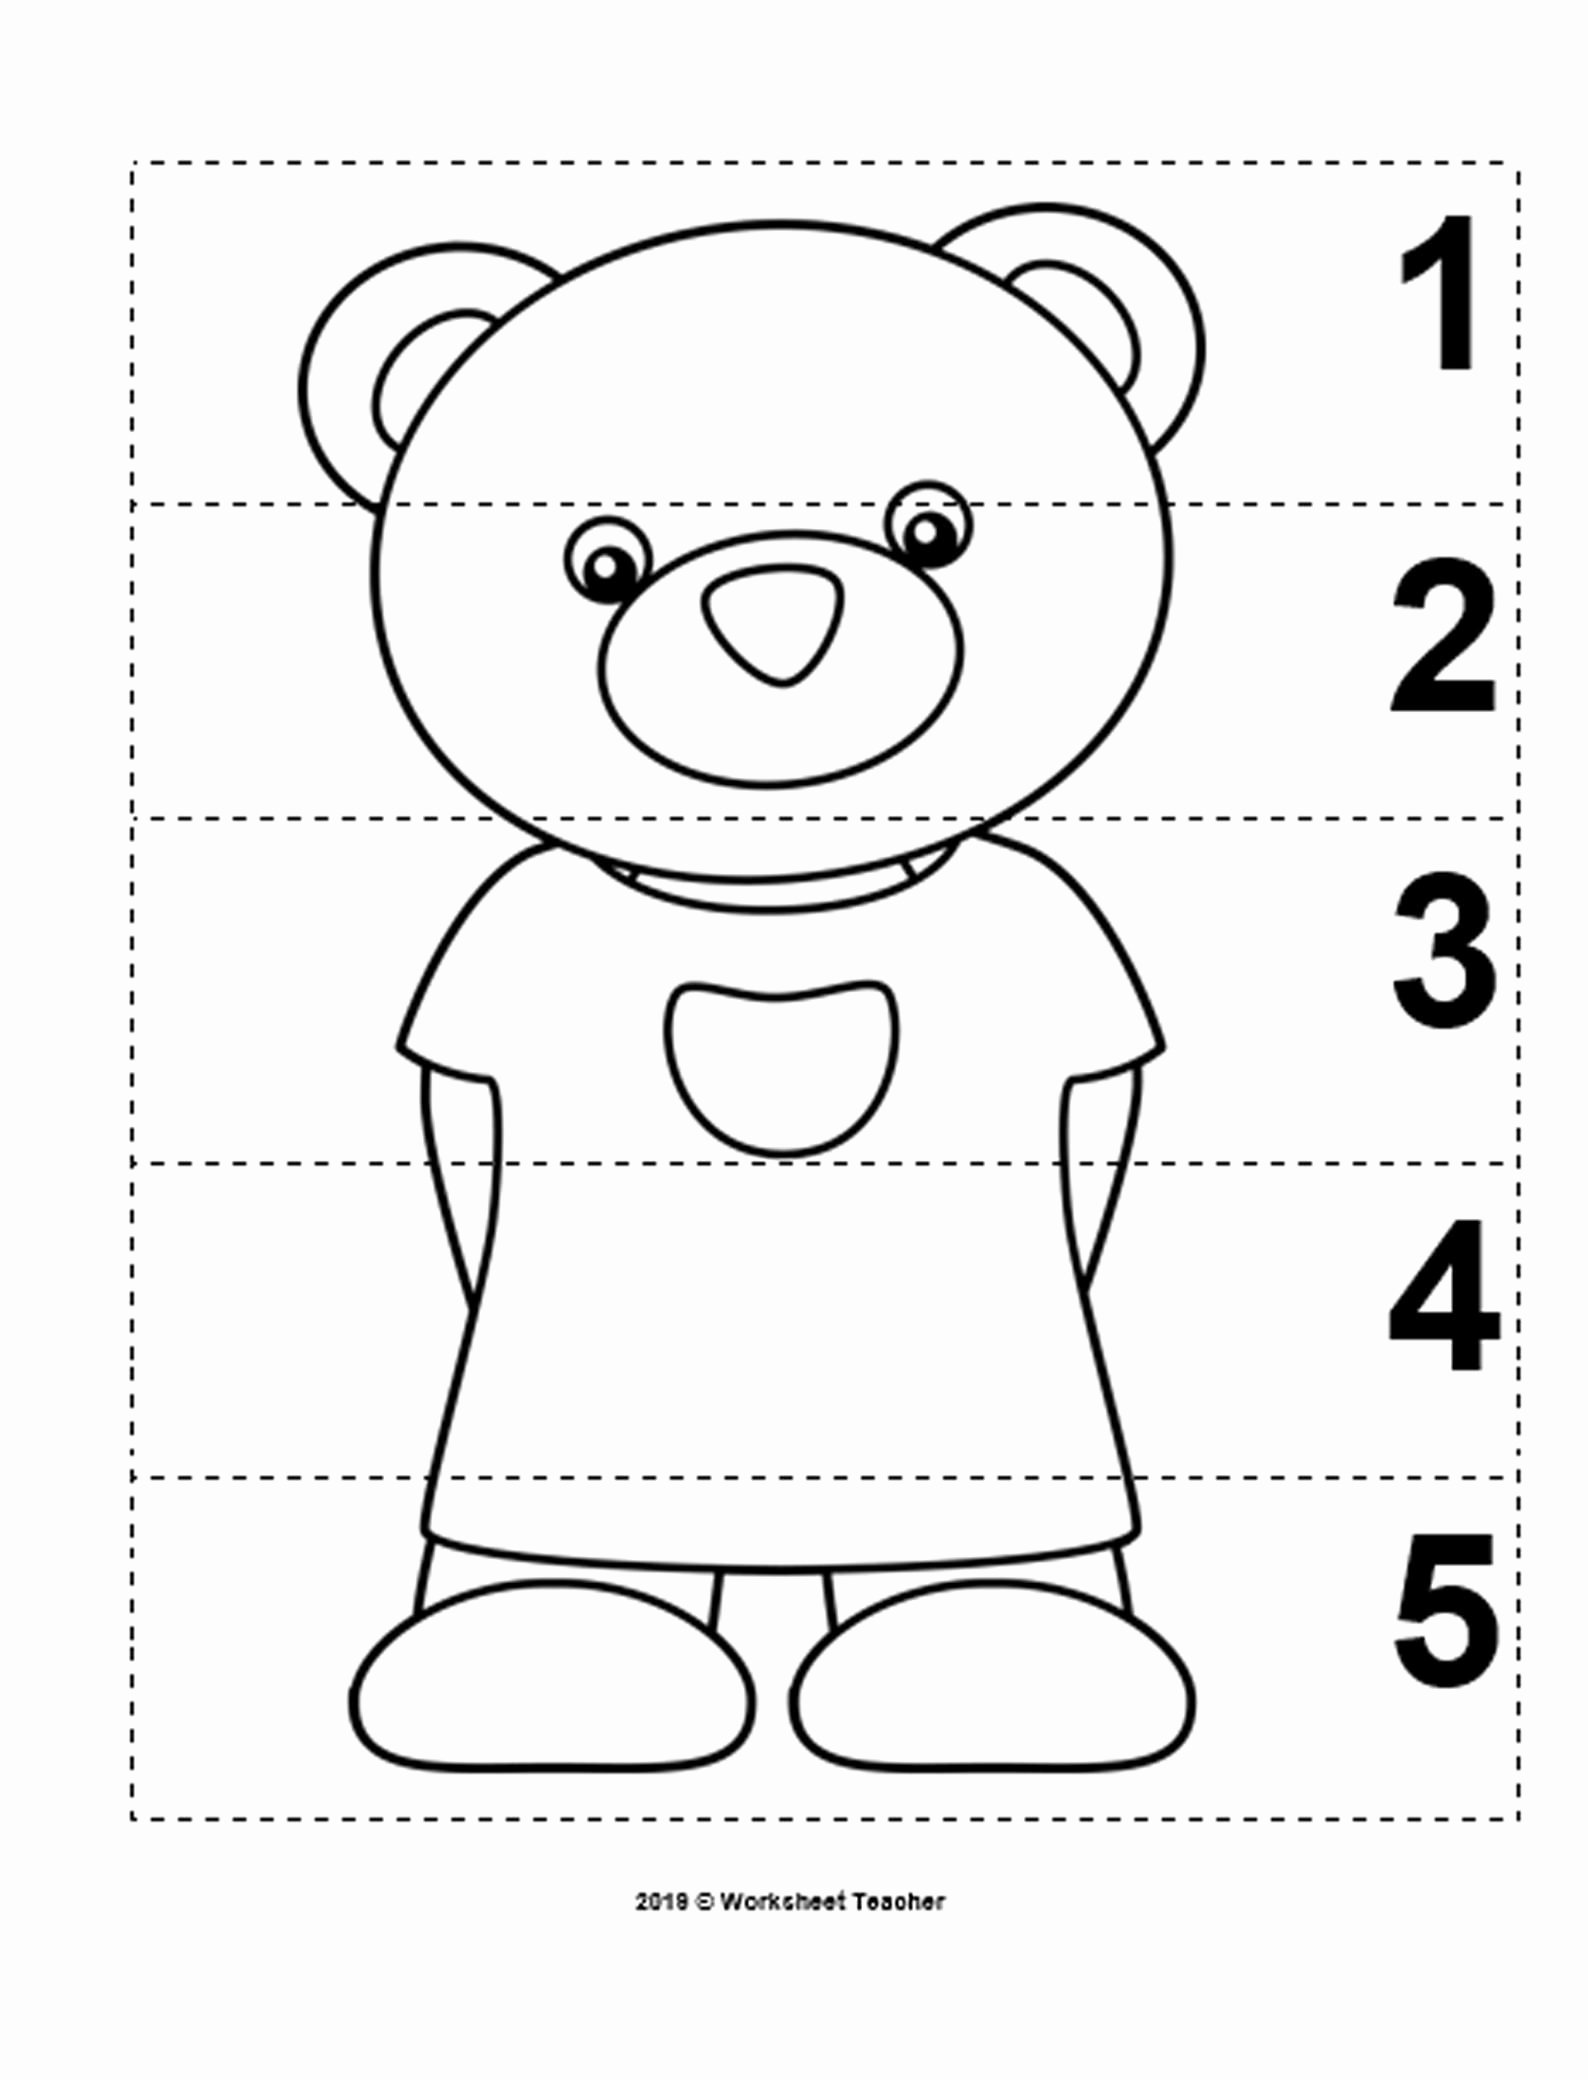 Goldilocks and the Three Bears Worksheets for Preschoolers Free 10 Goldilocks and the Three Bears Preschool Curriculum